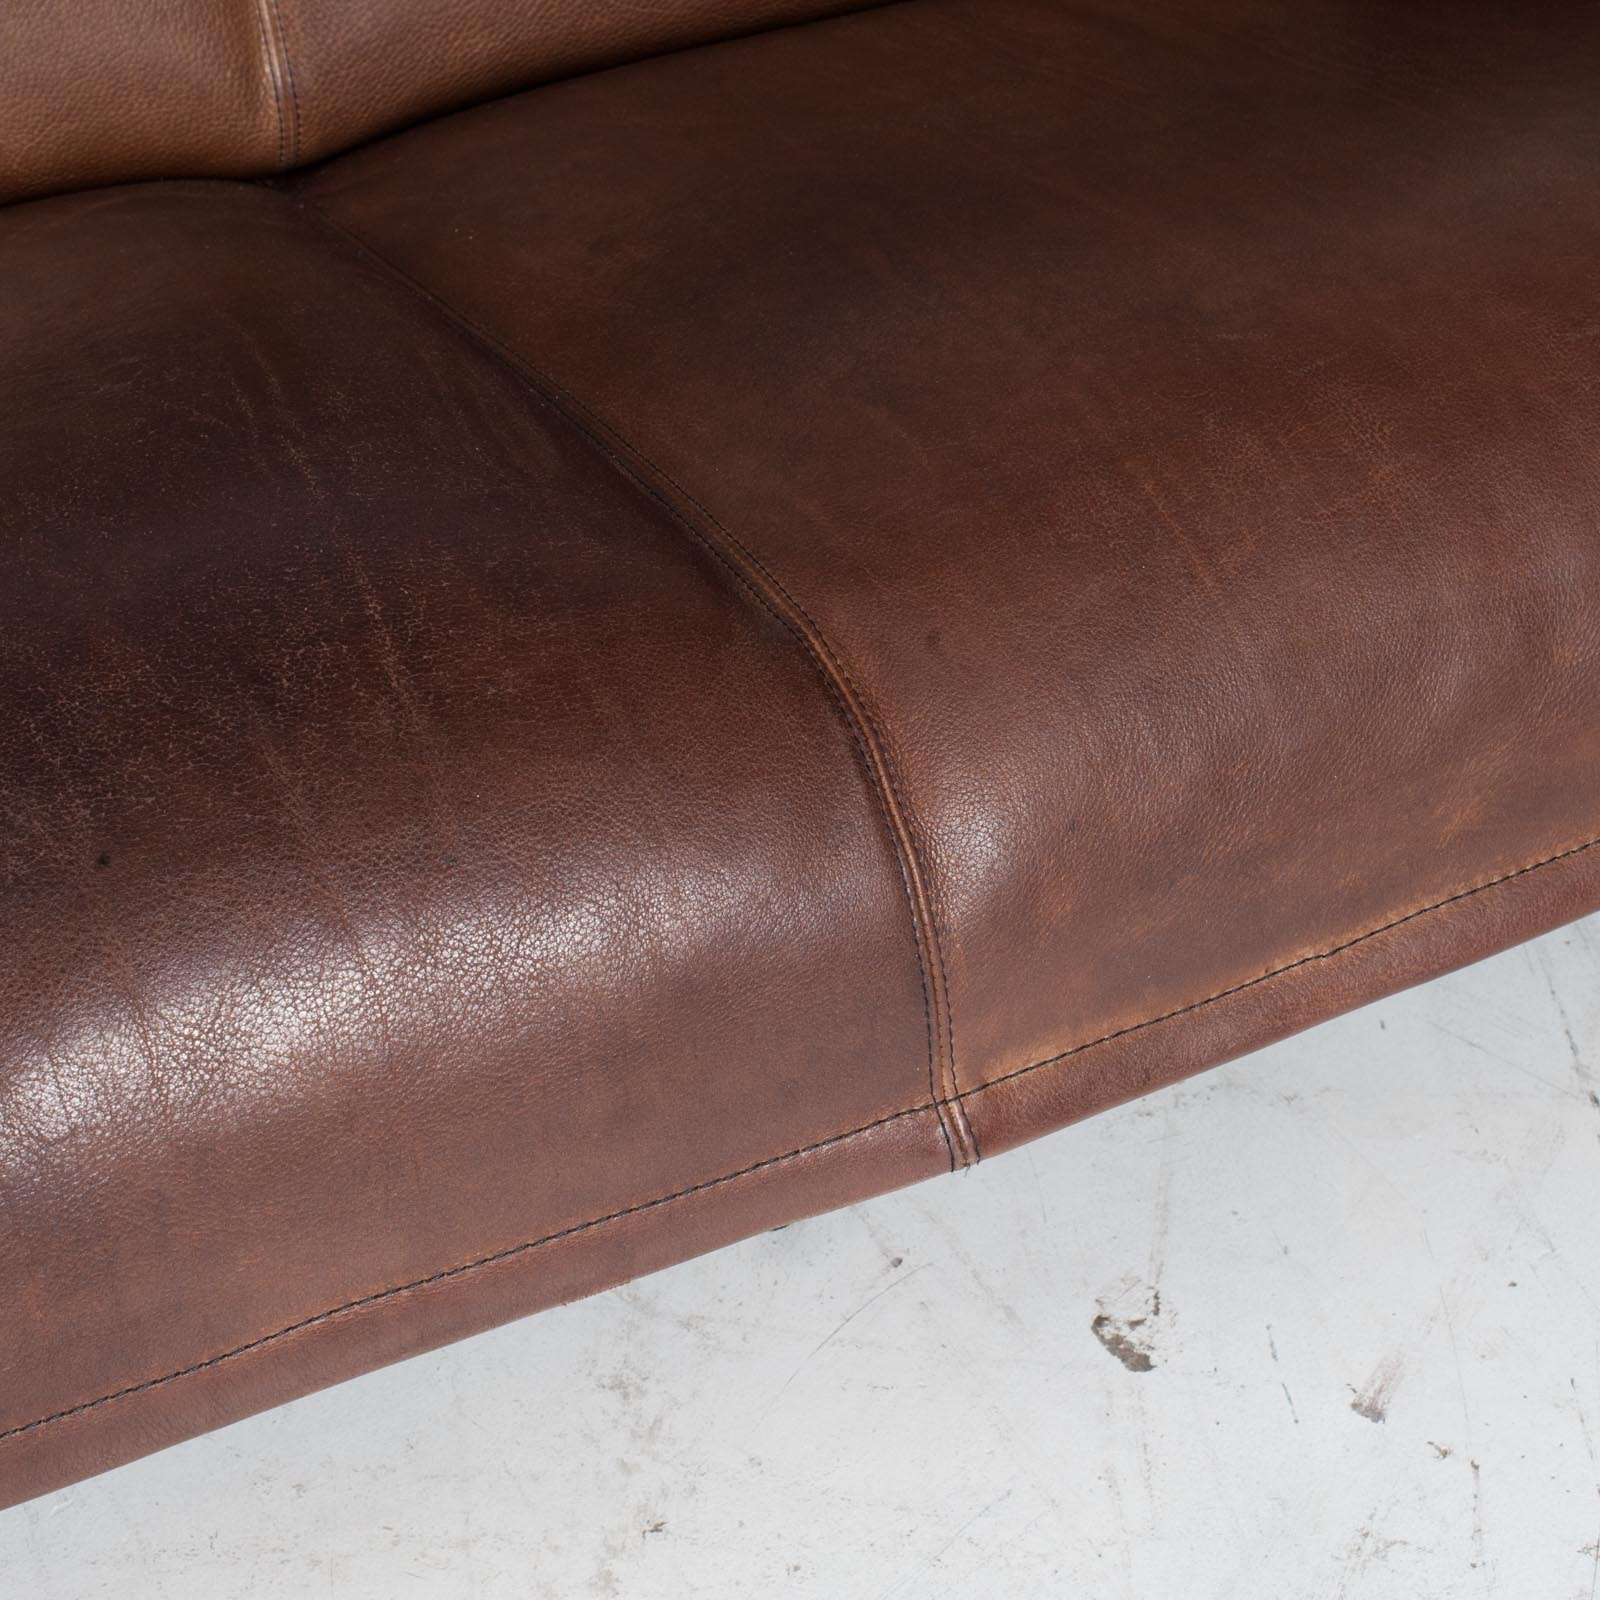 3 Seat Sofa By De Sede In Tan Neck Leather 1960s Denmark 010